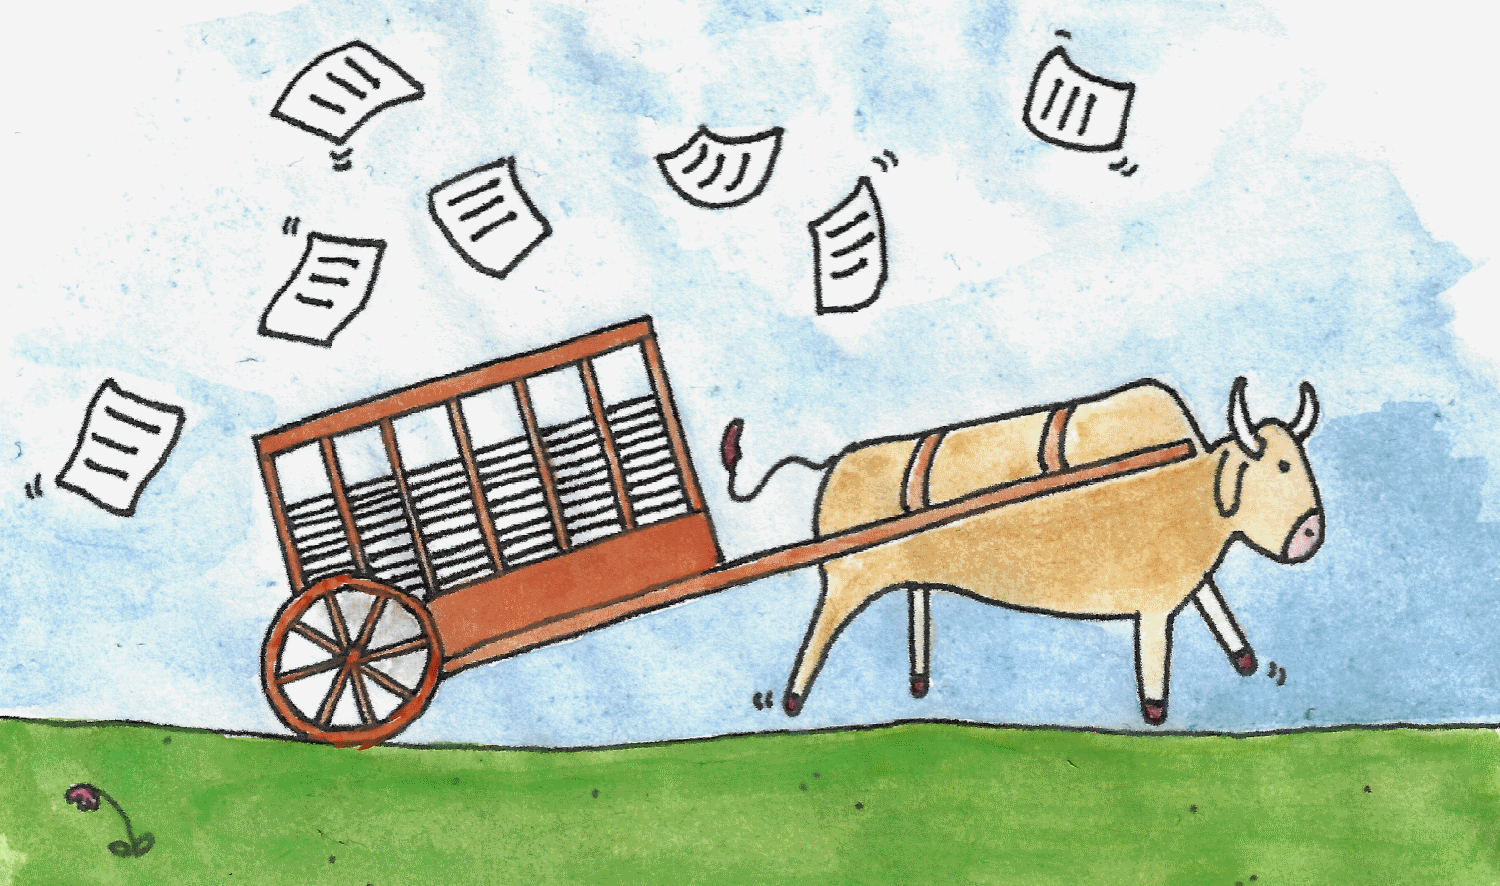 A watercolour painting of an ox cart full of documents, with documents up in the air.